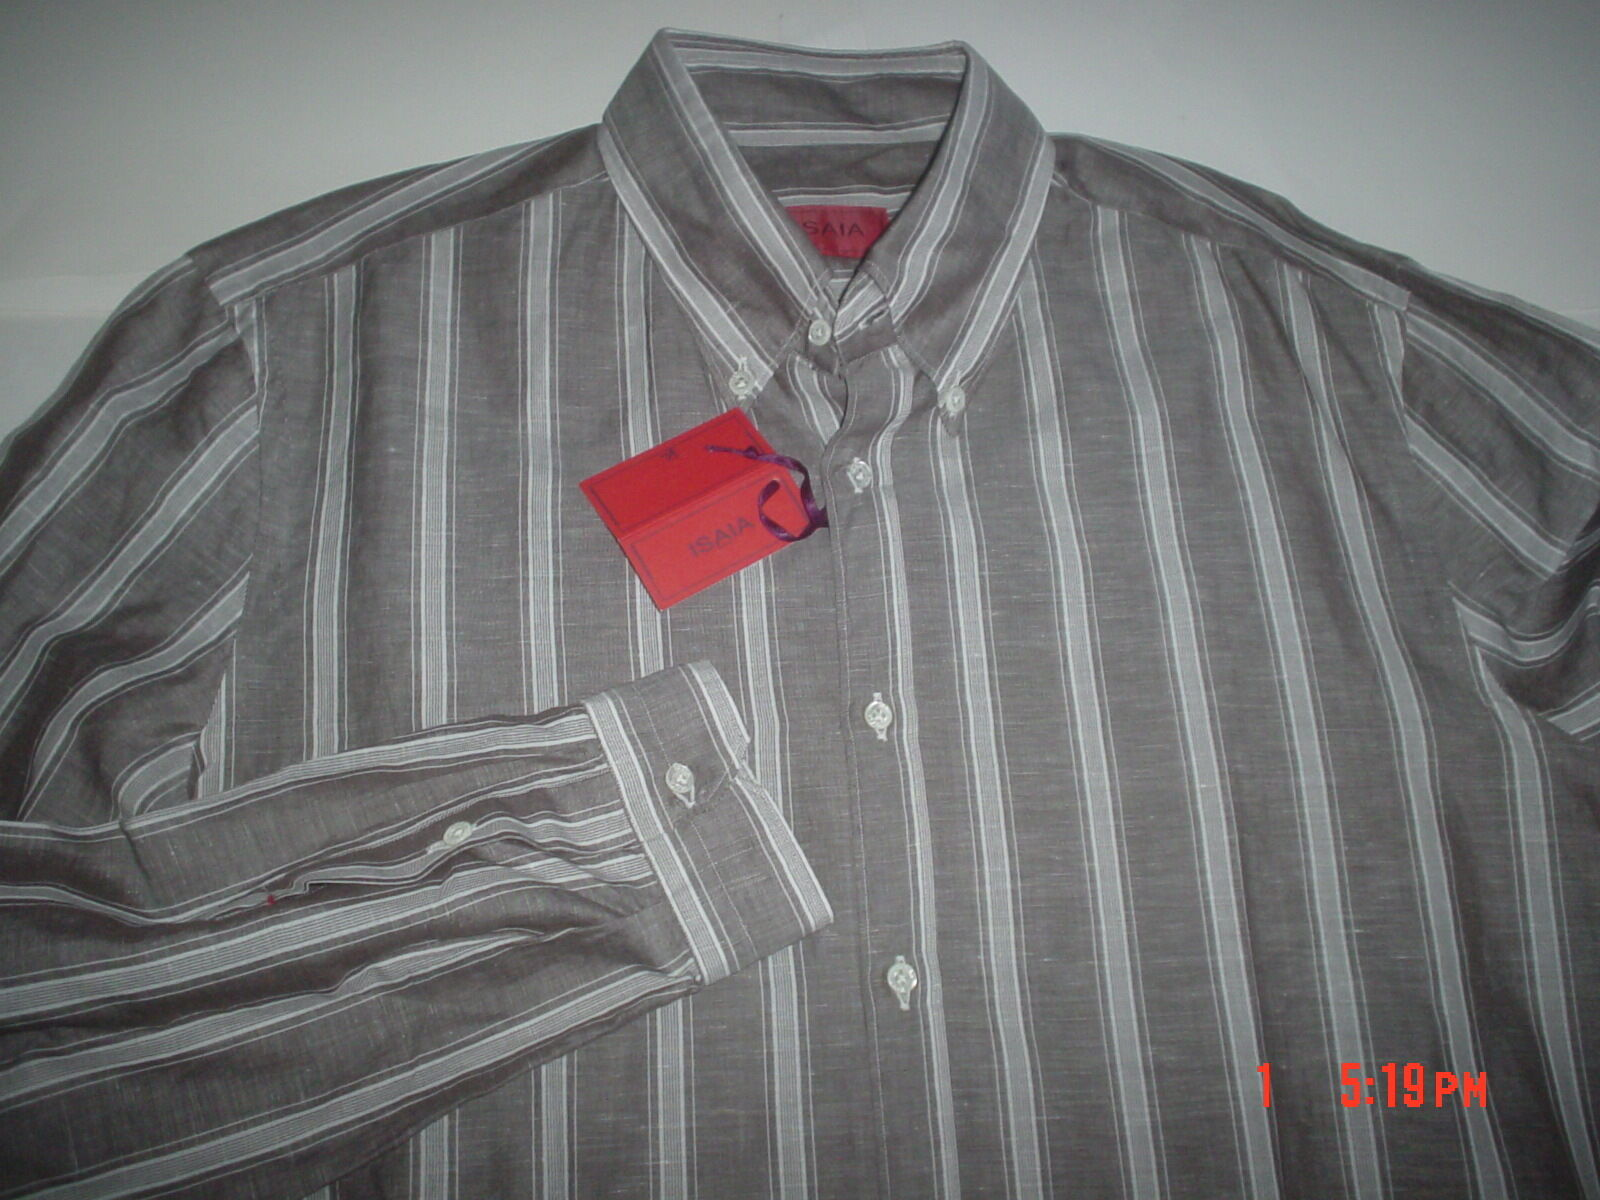 f29e1a6d NWT ISAIA NAPOLI MADE IN ITALY COTTON LINEN POSSIBLE SLEEVE MEN'S SHIRT  SZ.16,